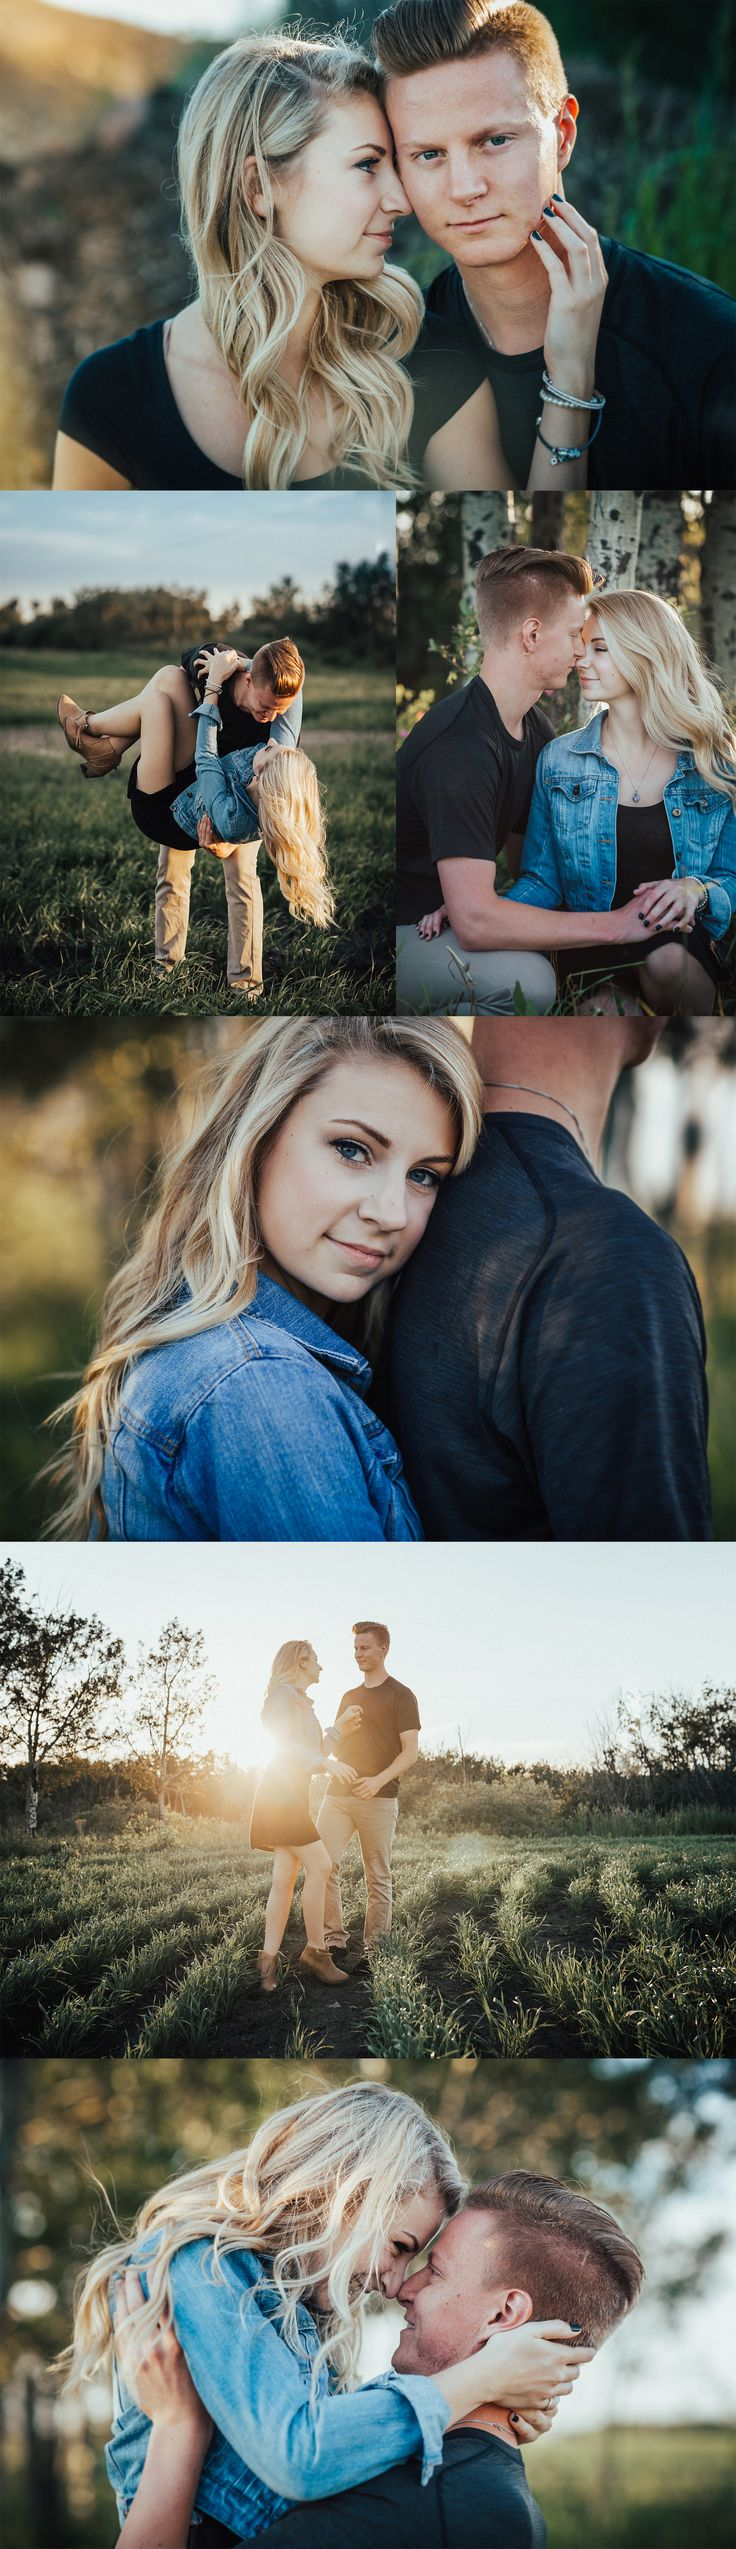 sarah thorpe photography, couples session, couples photography, couples session